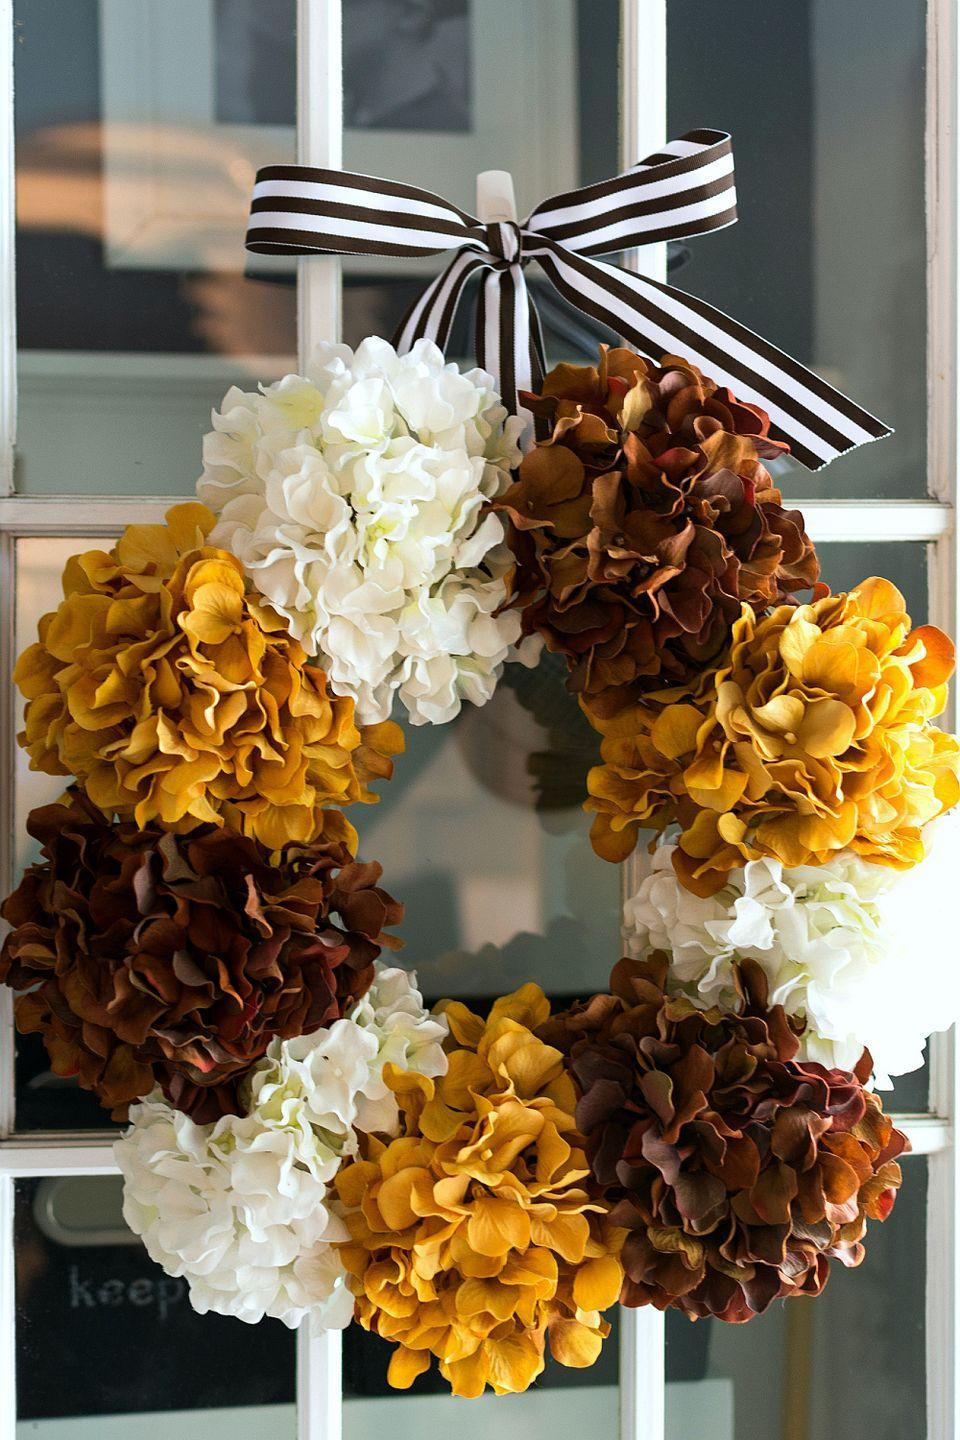 """<p>Bold hydrangeas will make your door the focal point of your front porch. </p><p><strong>Get the tutorial at <a href=""""http://www.itallstartedwithpaint.com/hydrangea-wreath-for-fall/"""" rel=""""nofollow noopener"""" target=""""_blank"""" data-ylk=""""slk:It All Started with Paint"""" class=""""link rapid-noclick-resp"""">It All Started with Paint</a>.</strong> </p>"""